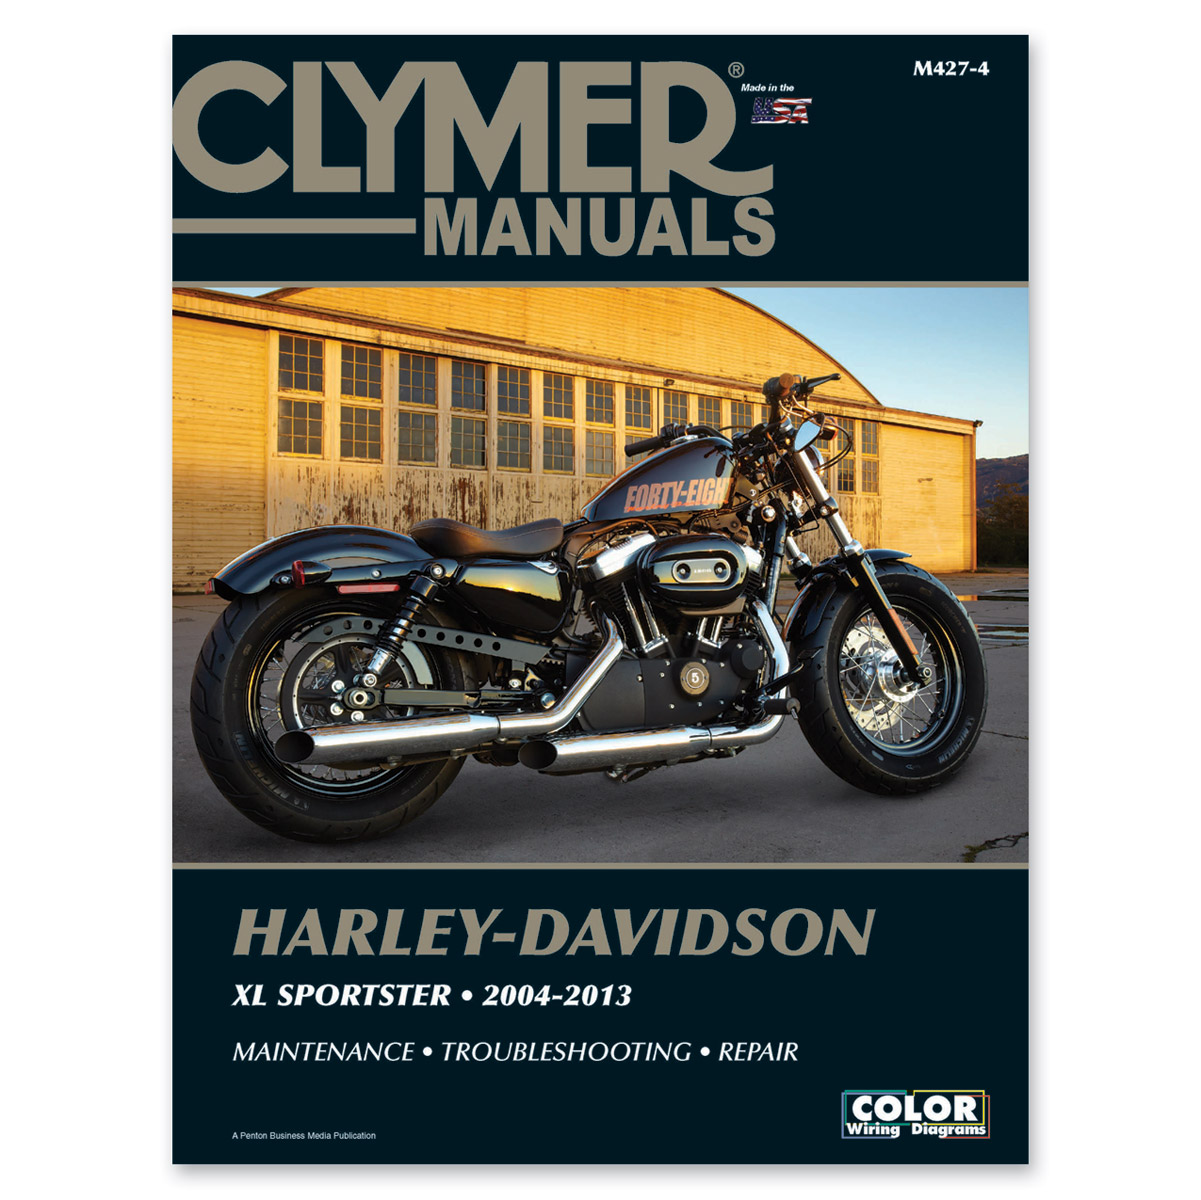 Clymer 2004-13 XL Sportster Repair Manual - M427-4